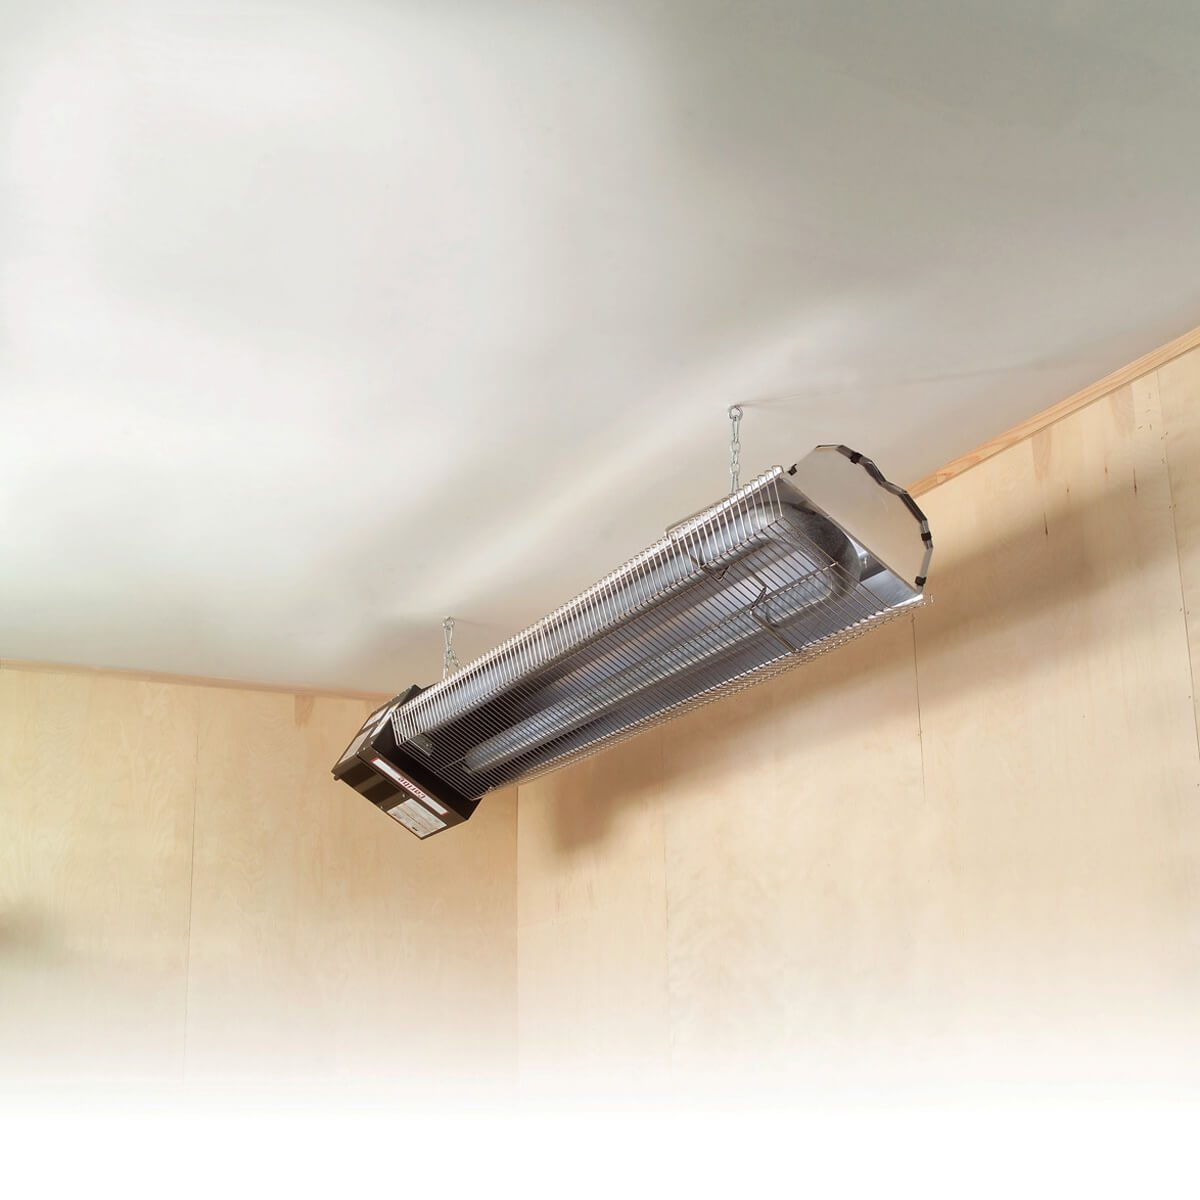 12 Best Ways To Heat A Garage In The Winter The Family Handyman